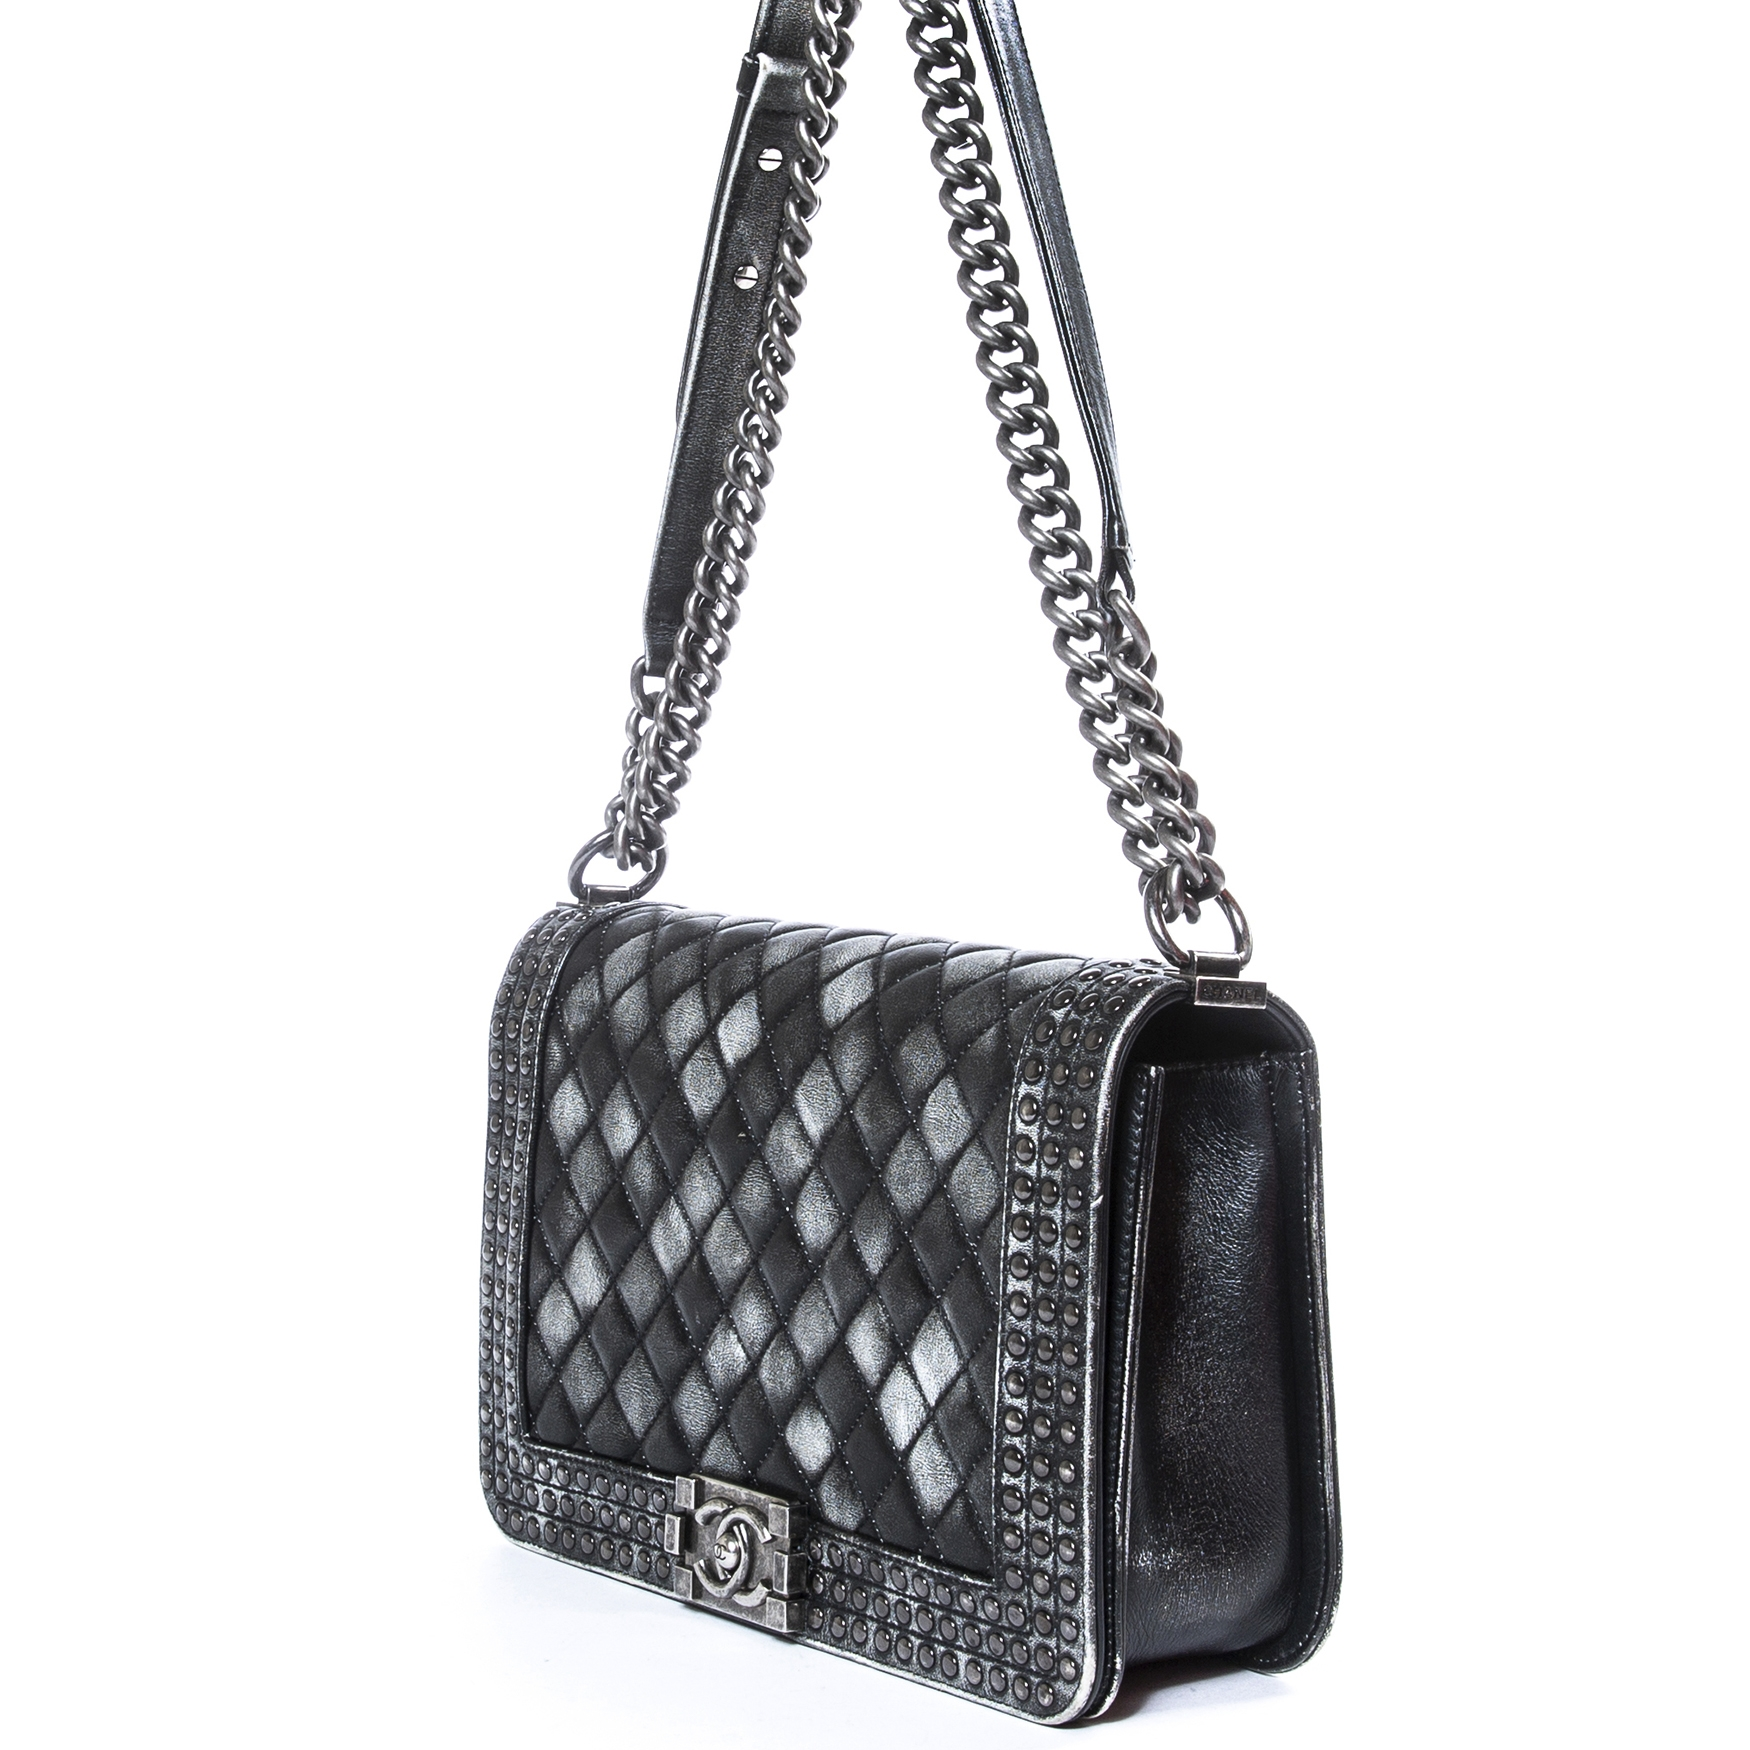 c8d2b59db28a Chanel New Medium Ombre Boy Bag for sale online at Labellov Koop en verkoop  uw authentieke designer handtassen aan de beste prijs bij Labellov